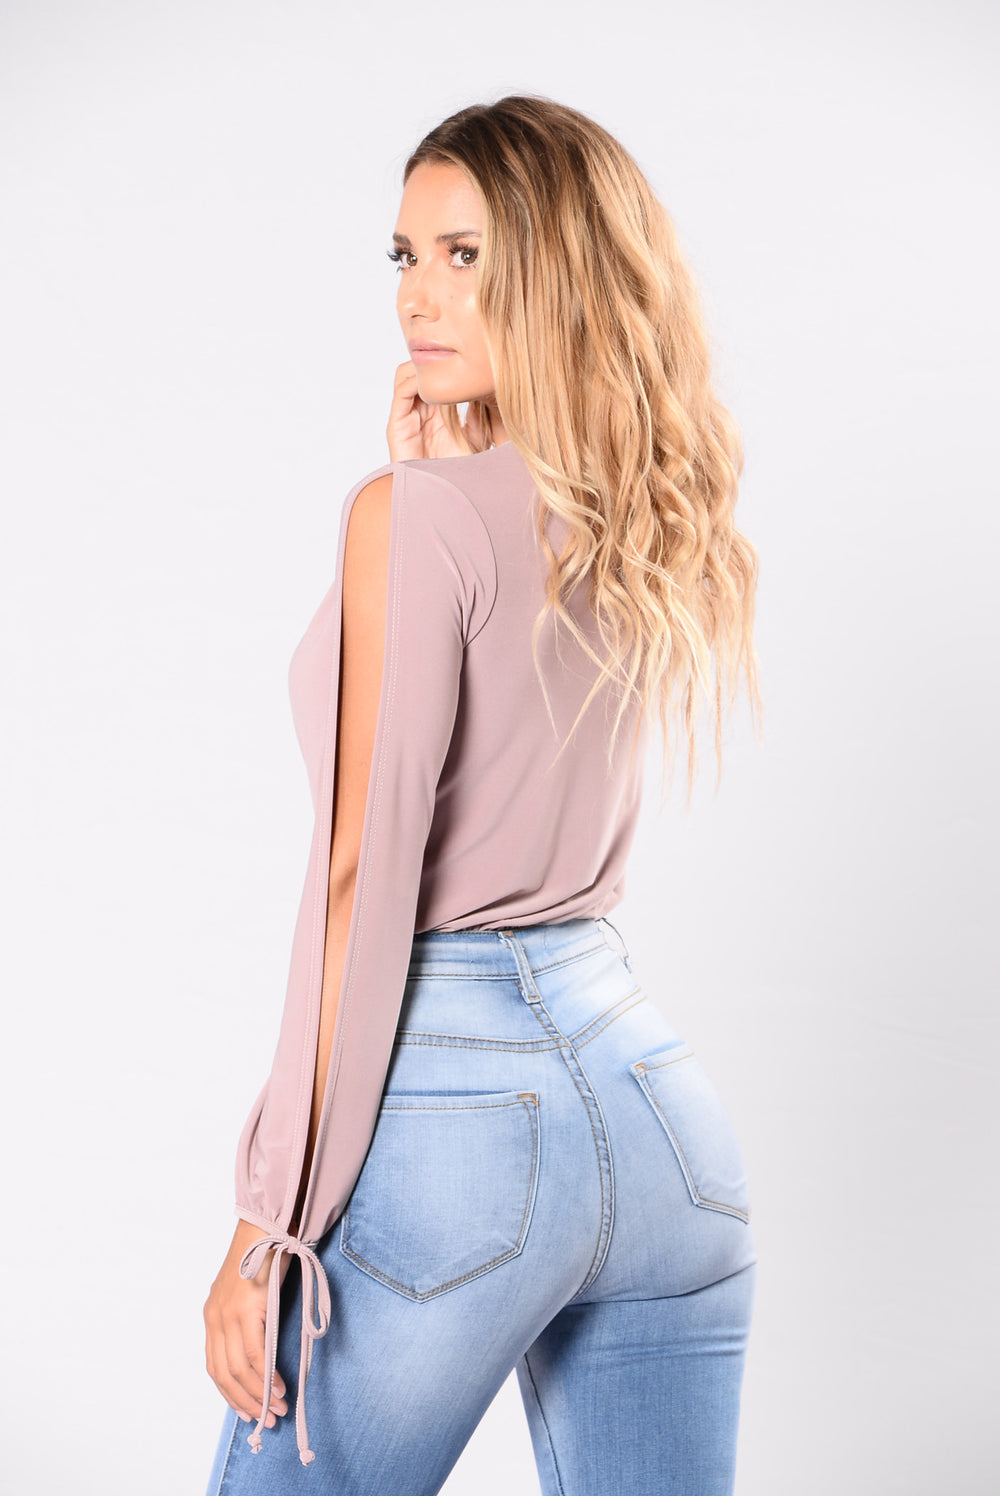 Got This Thing For You Bodysuit - Mauve